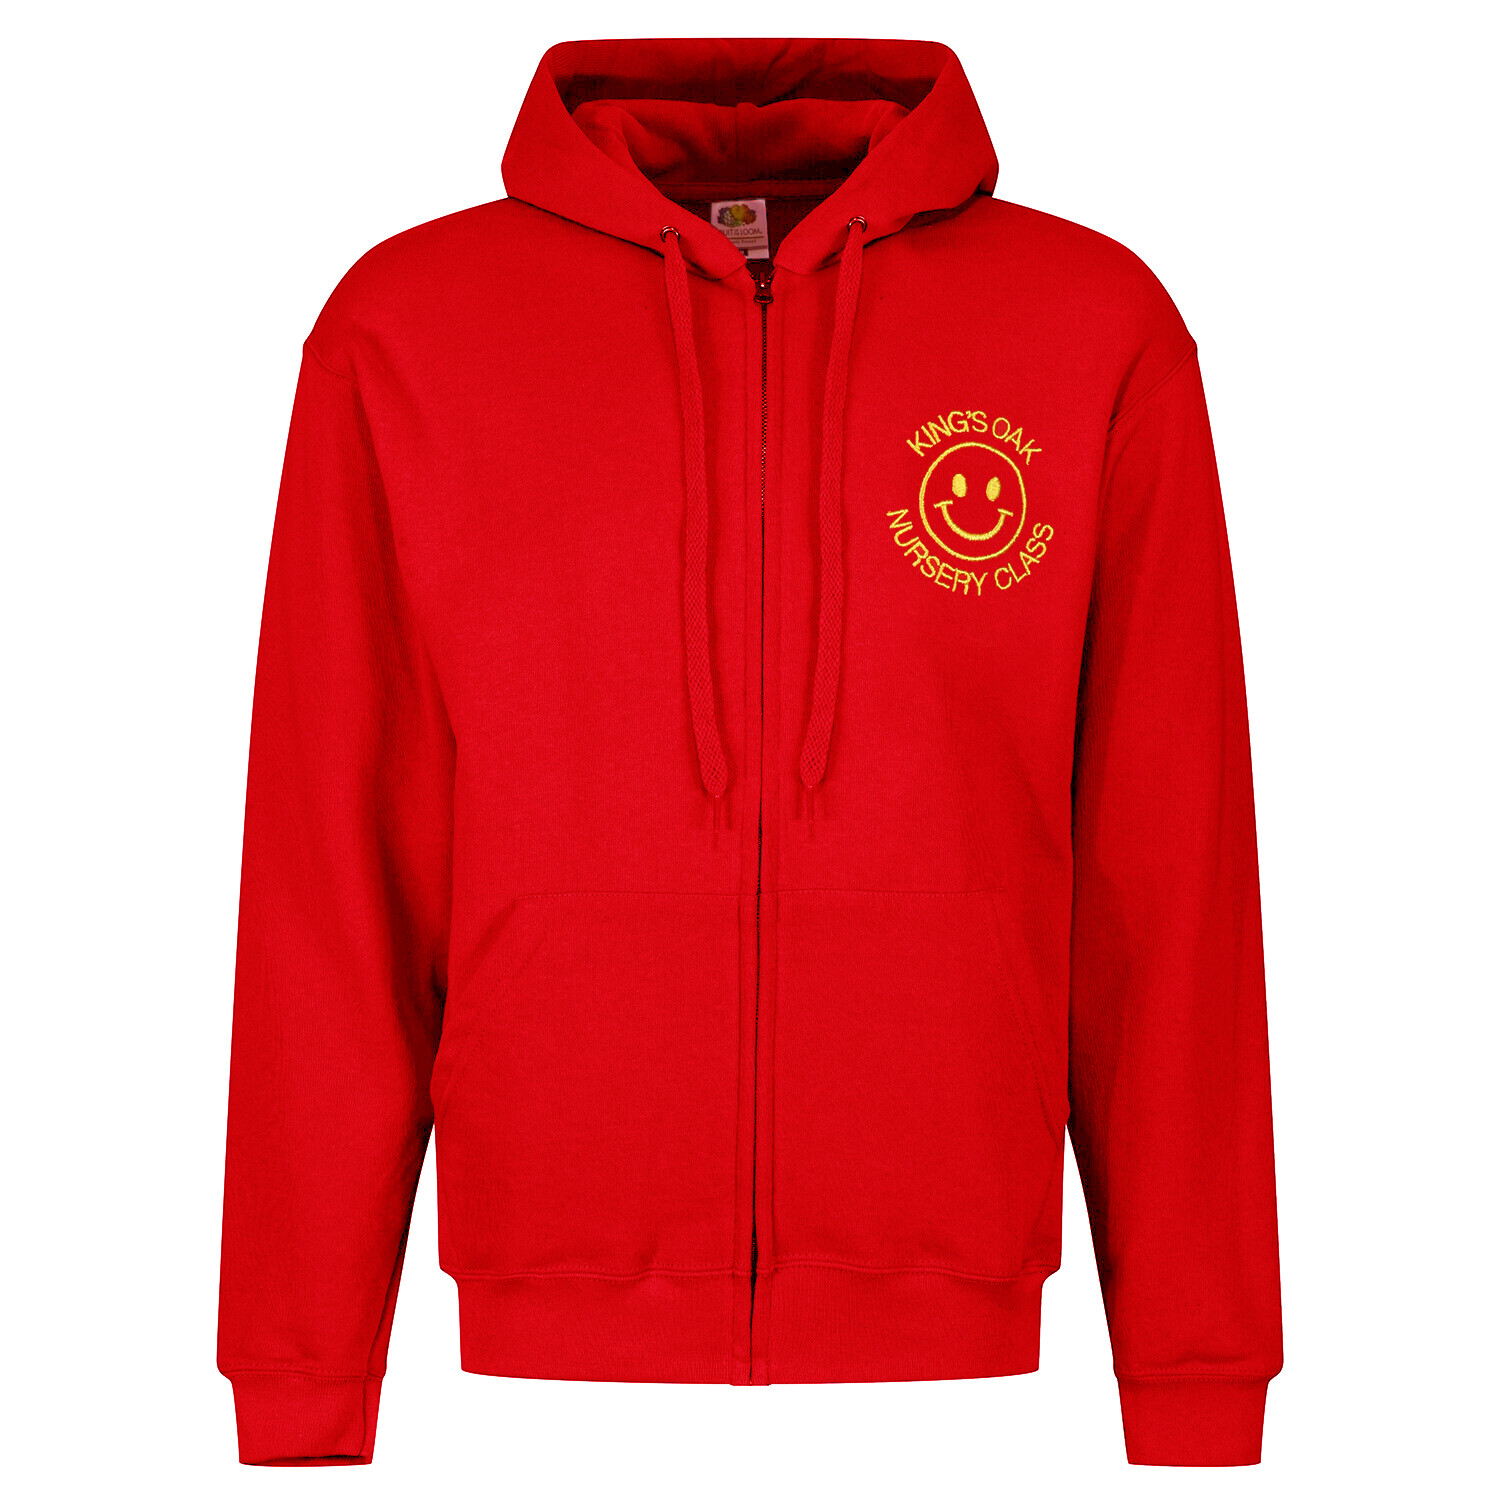 King's Oak Nursery Staff ZIPPER Hoody (Unisex) (RCSGD58)